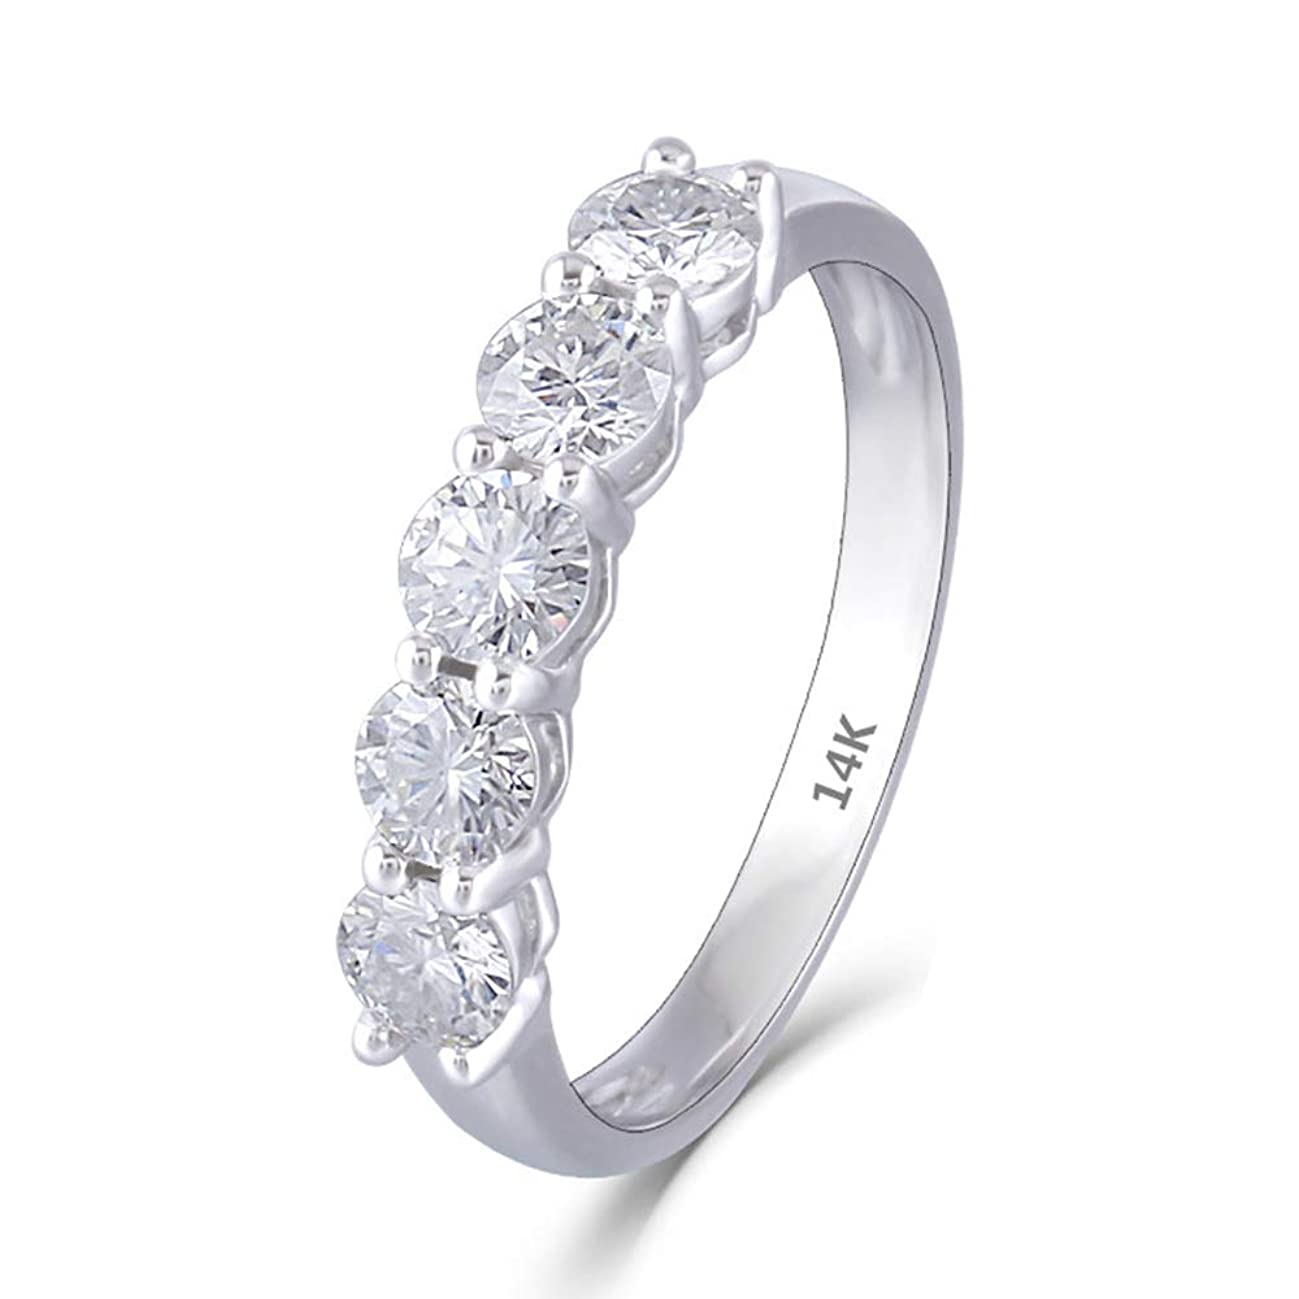 DOVEGGS Solid 14K White Gold 1.25CTW 4mm GH Color Moissanite Engagement Ring Half Eternity Anniversary Wedding Band